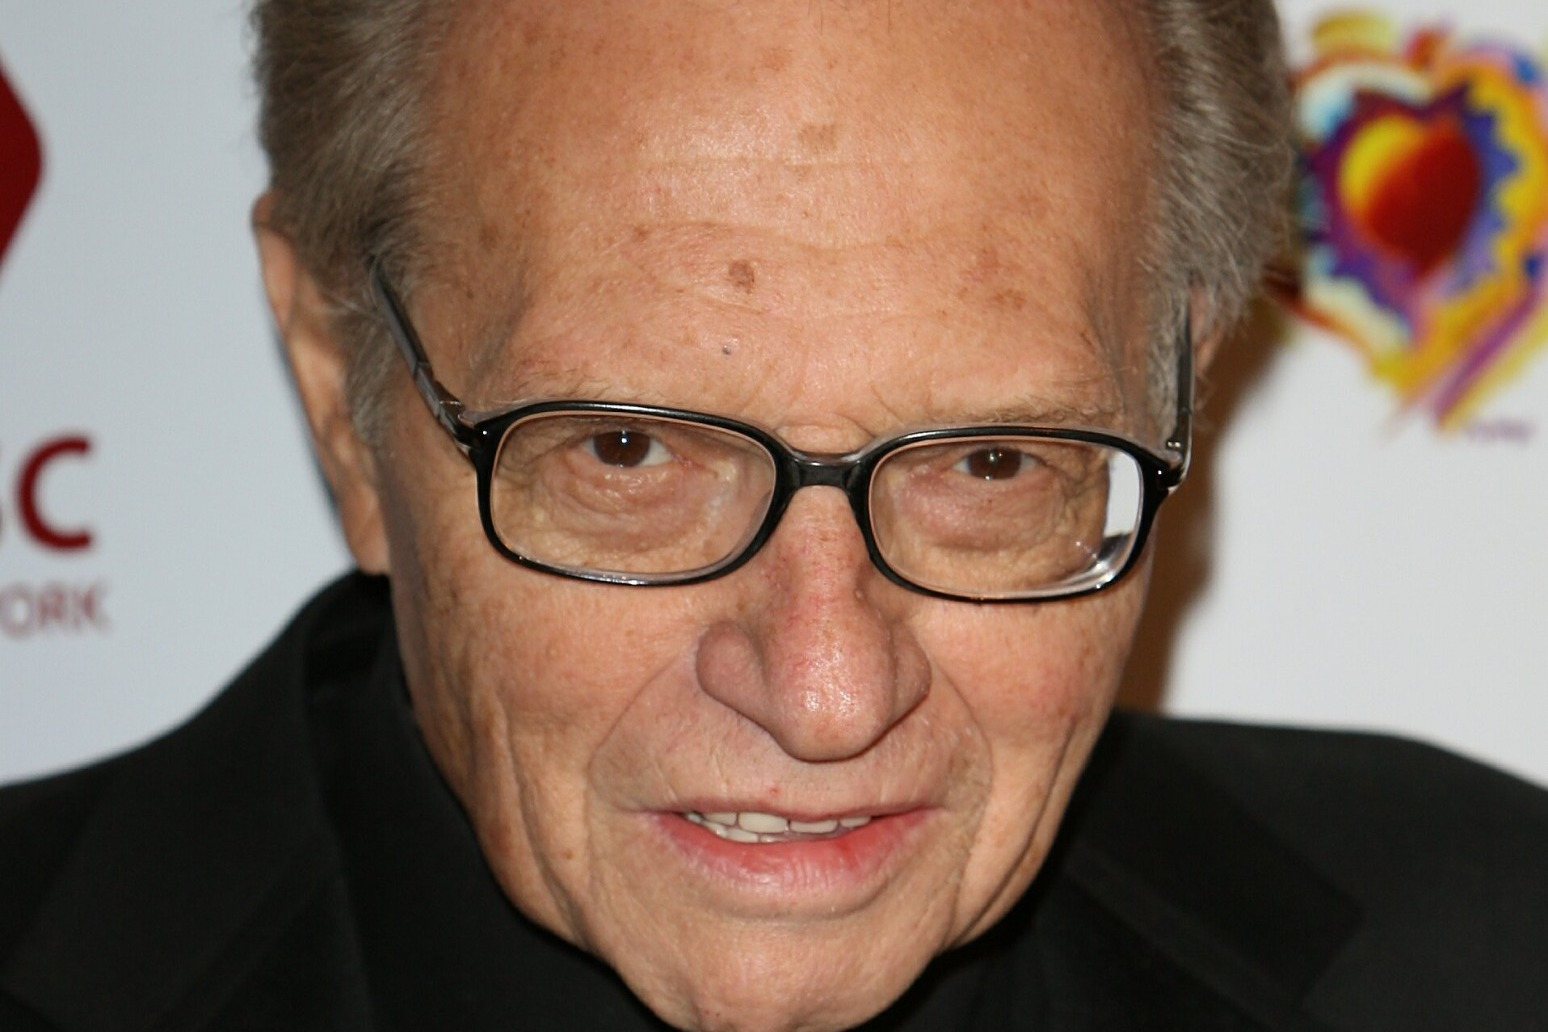 US talk show host Larry King has died in Los Angeles at the age of 87